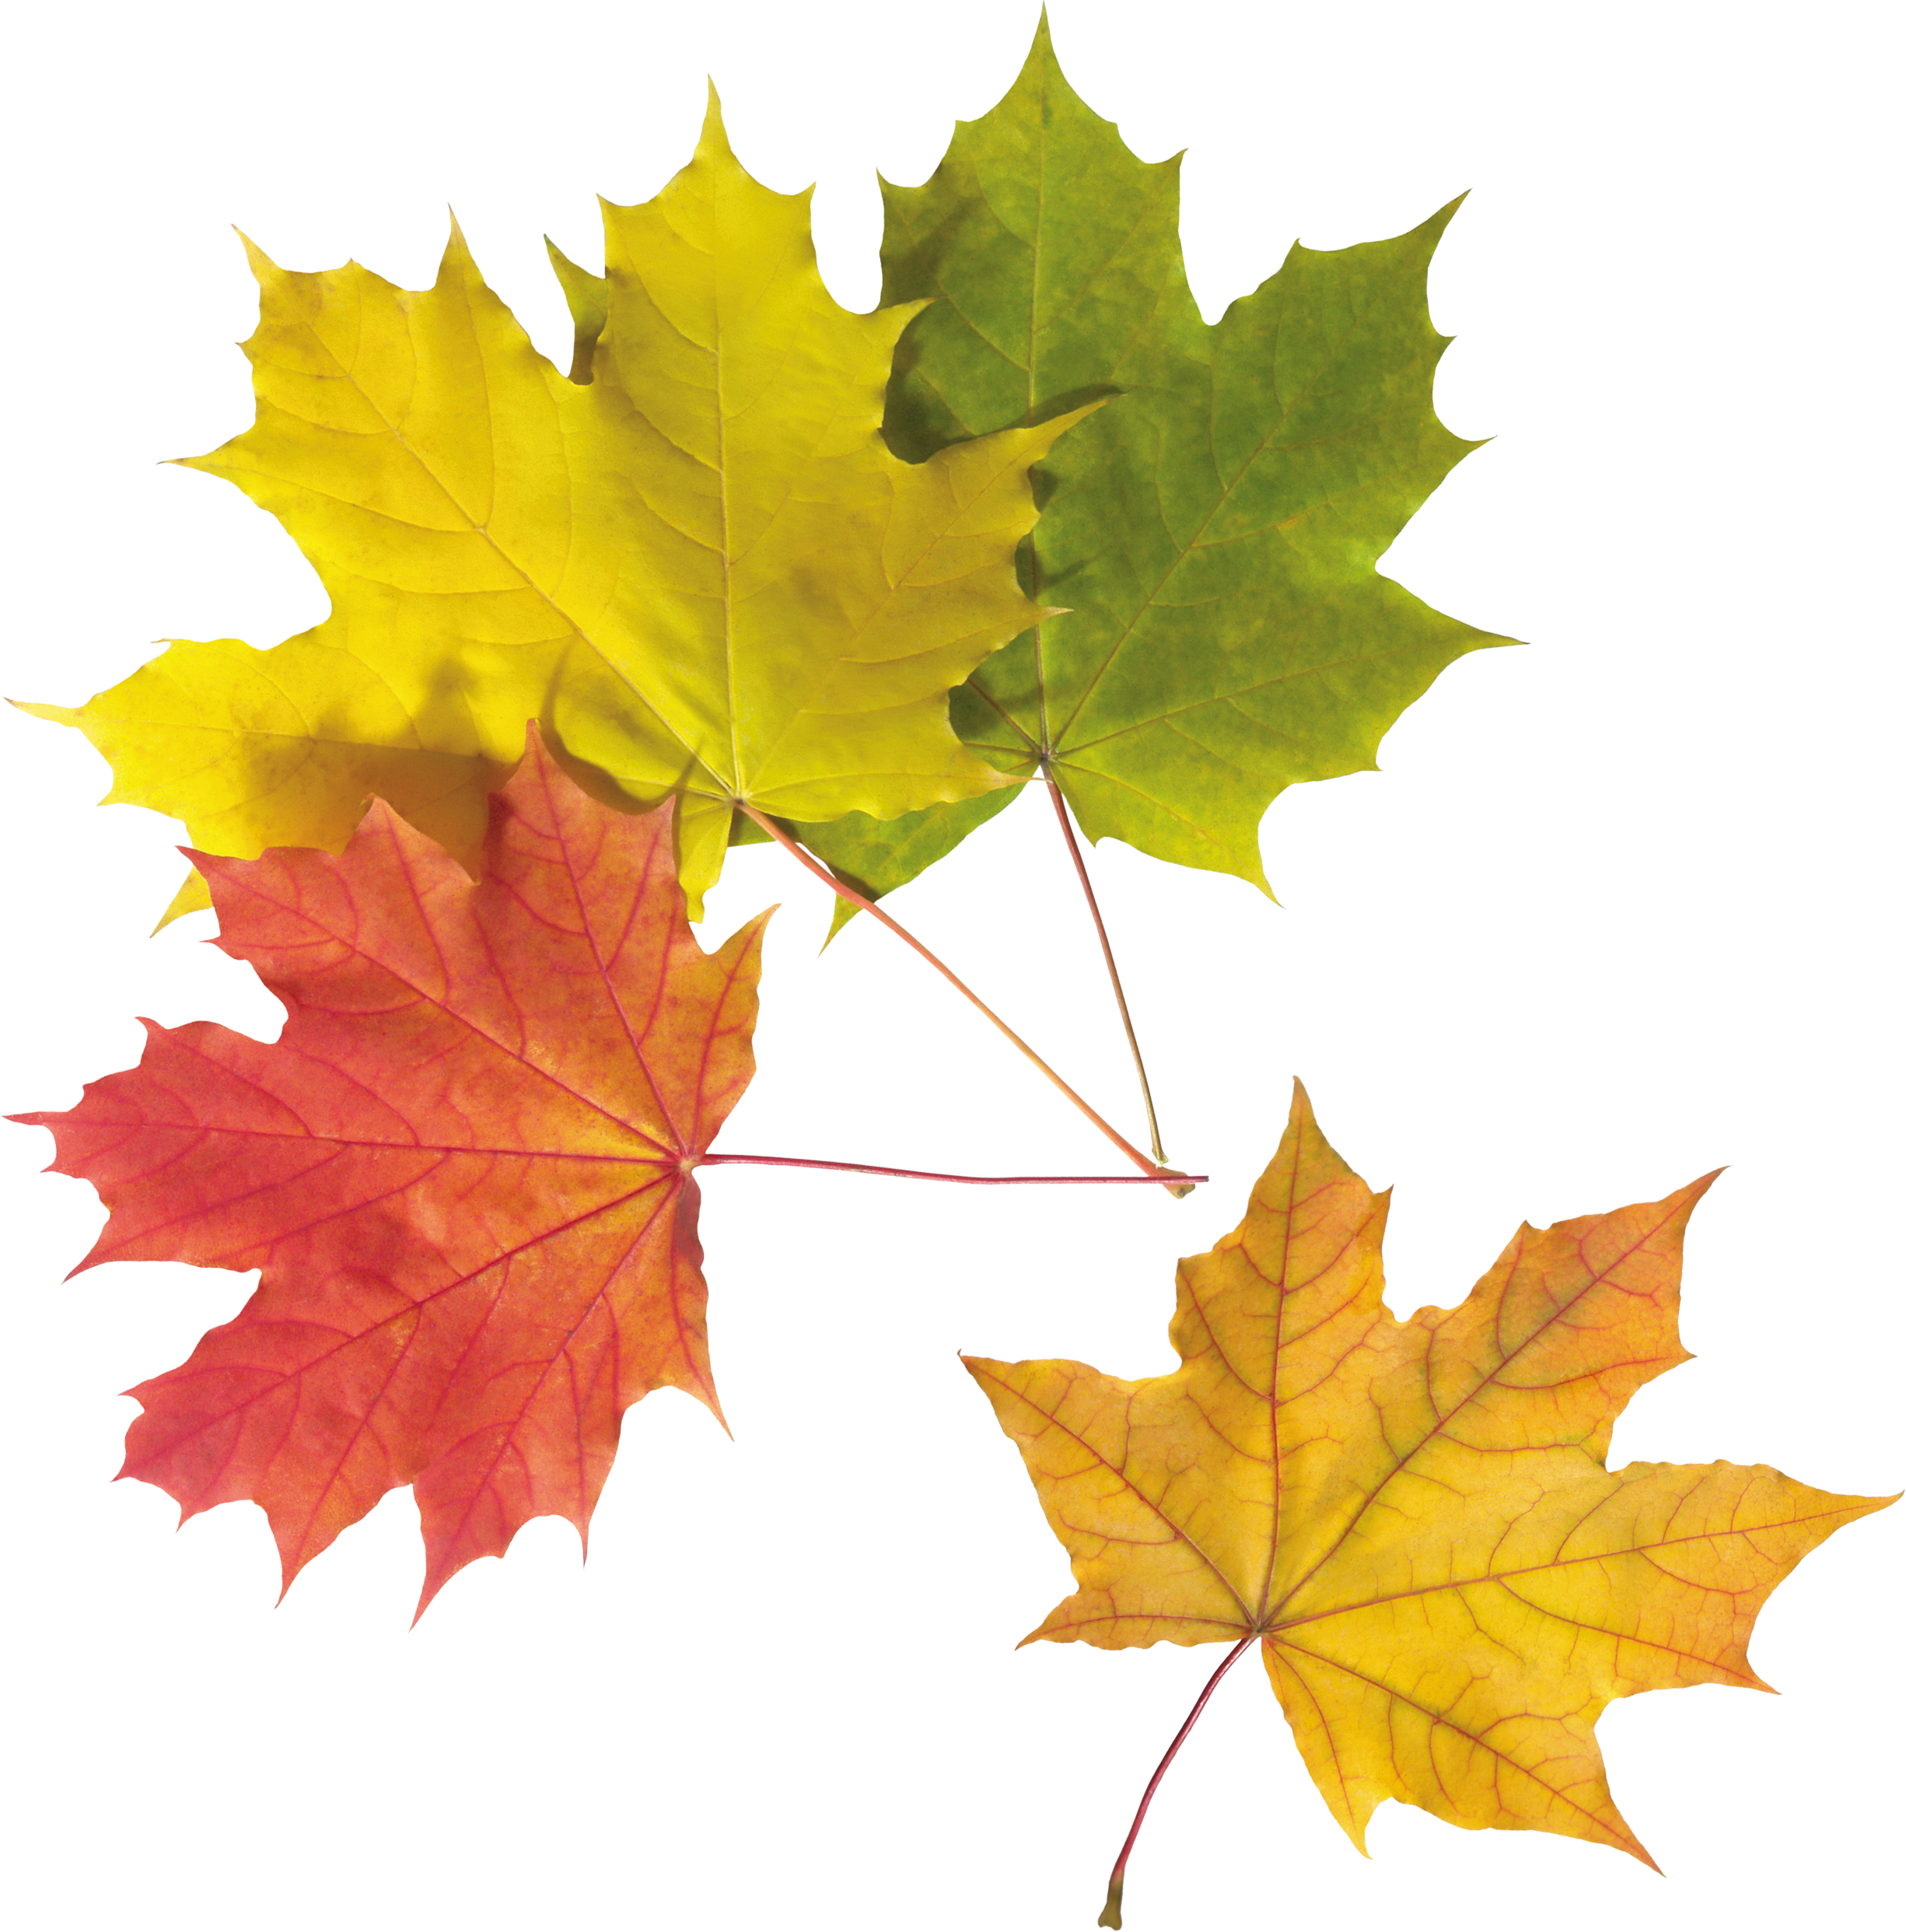 Autumn Png Leaf - Leaves, Transparent background PNG HD thumbnail